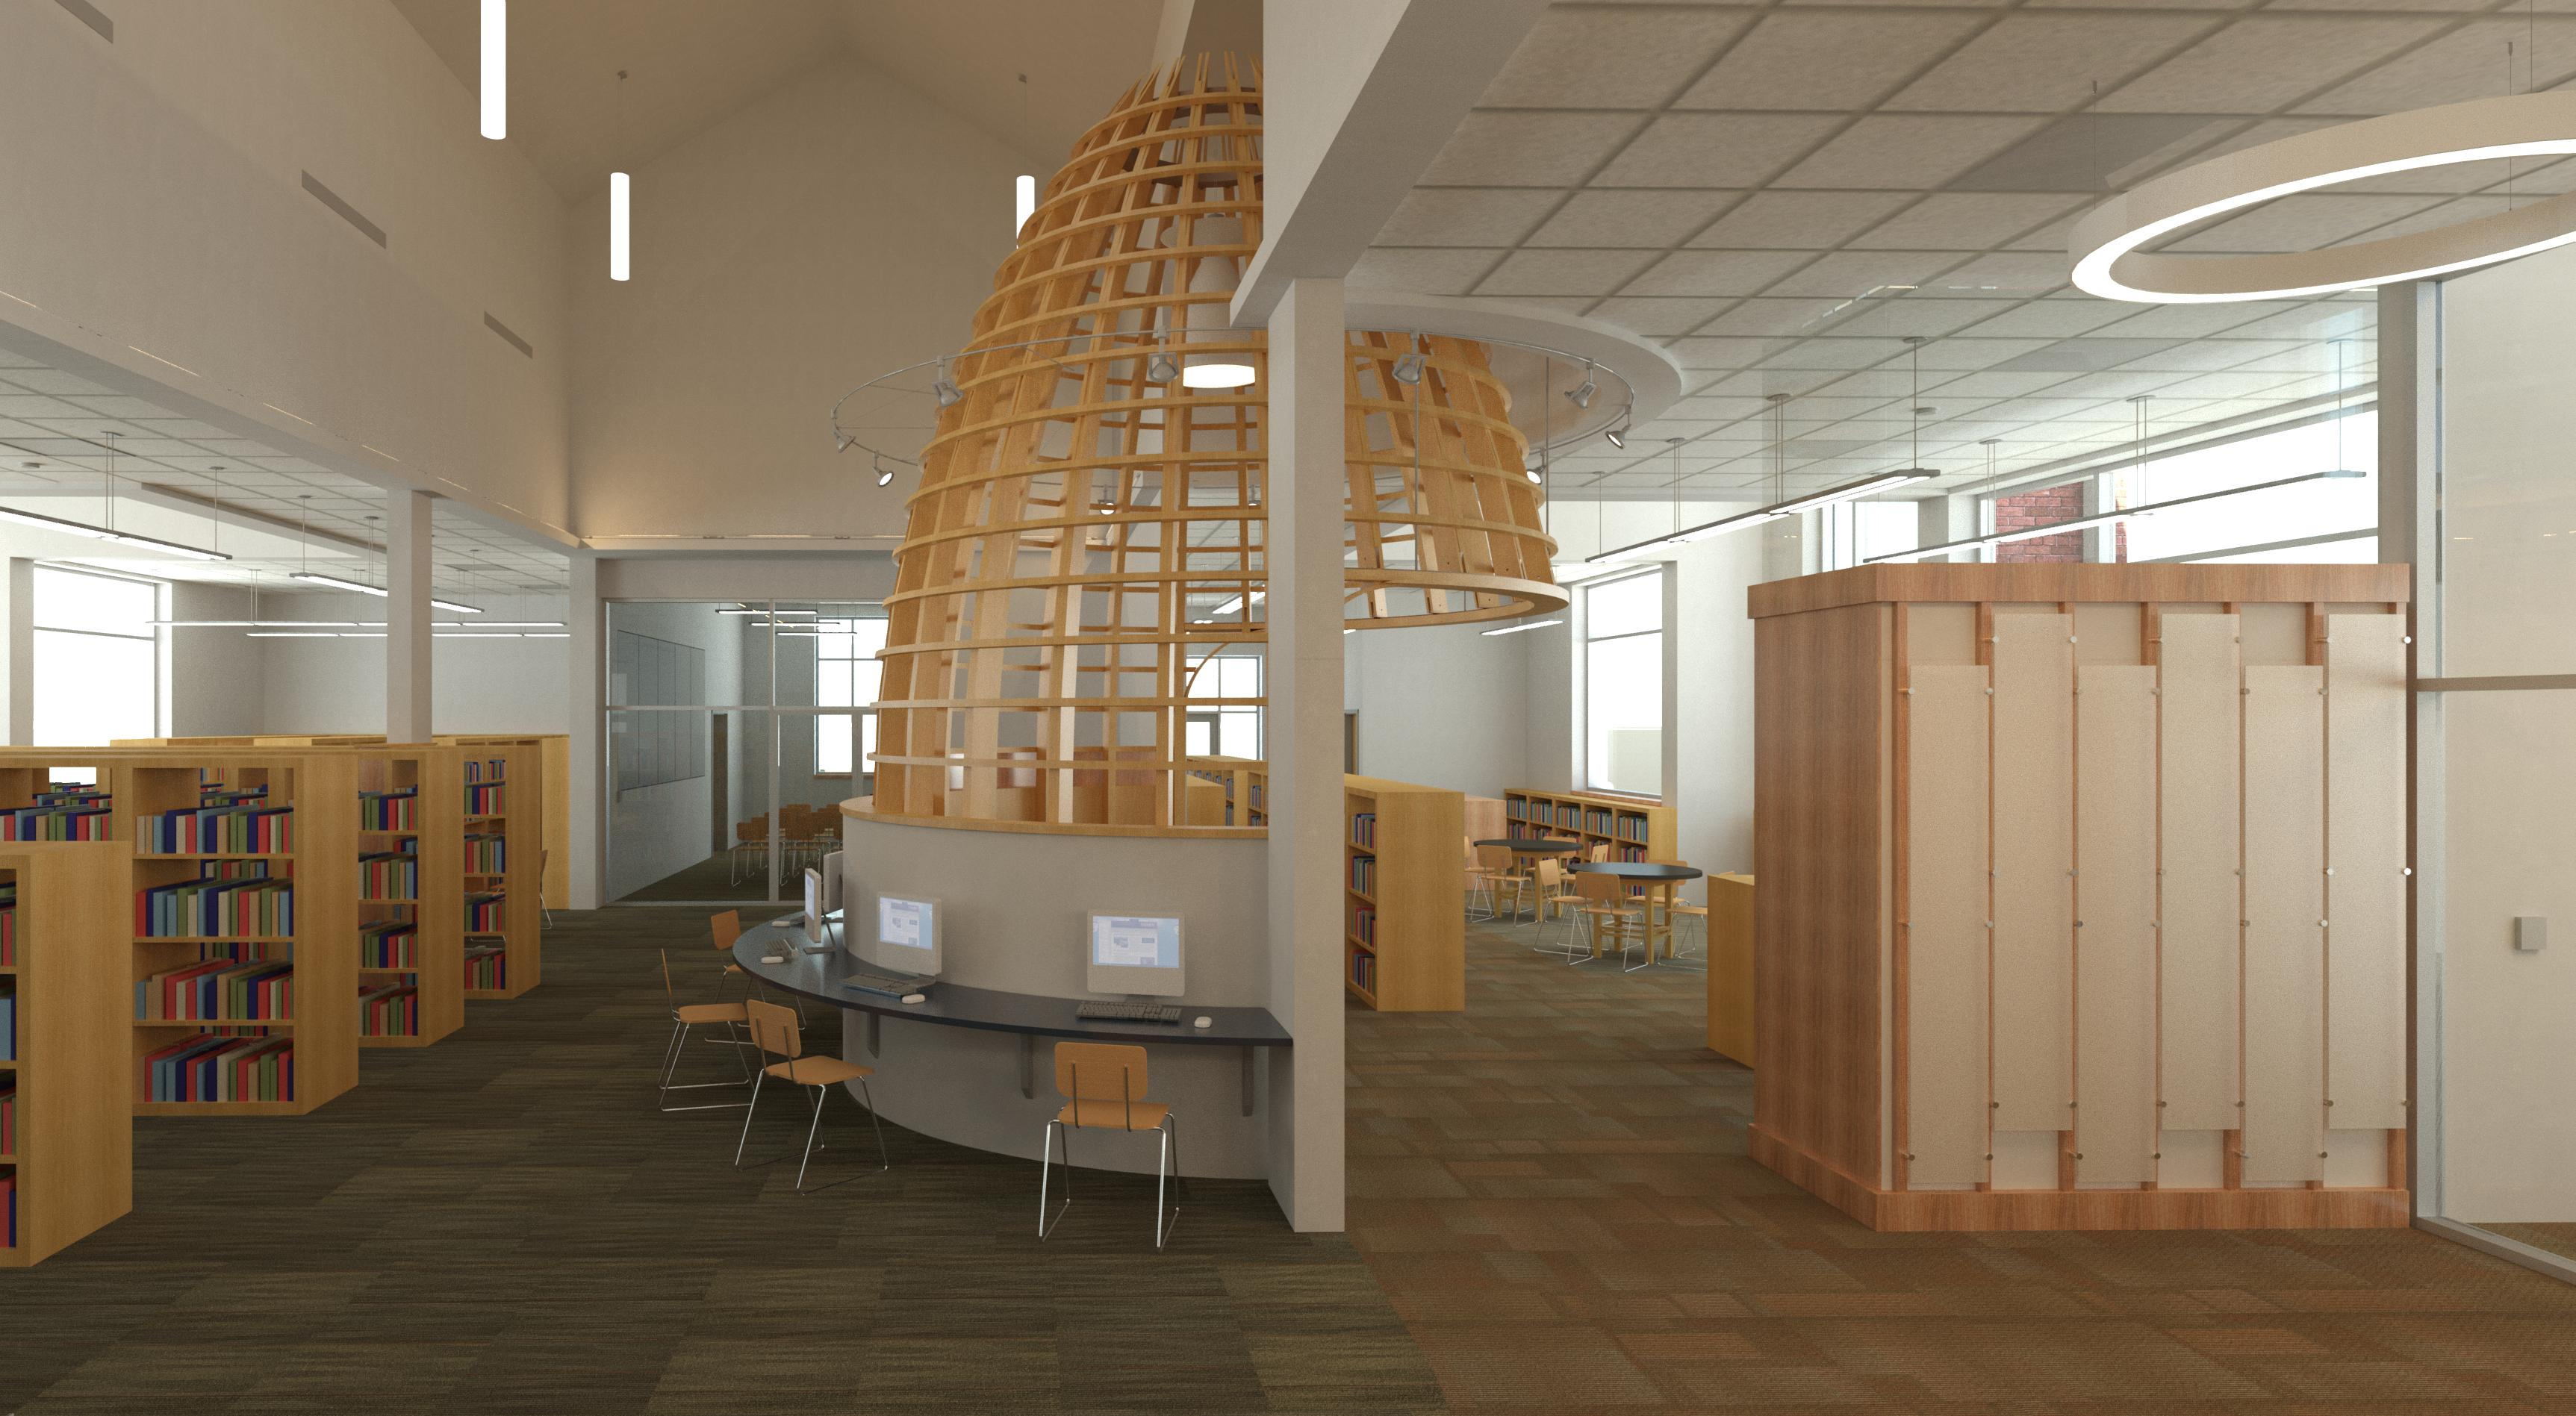 Virtual Tour of the Charles City Library and Richard M. Bowman Center for Local History